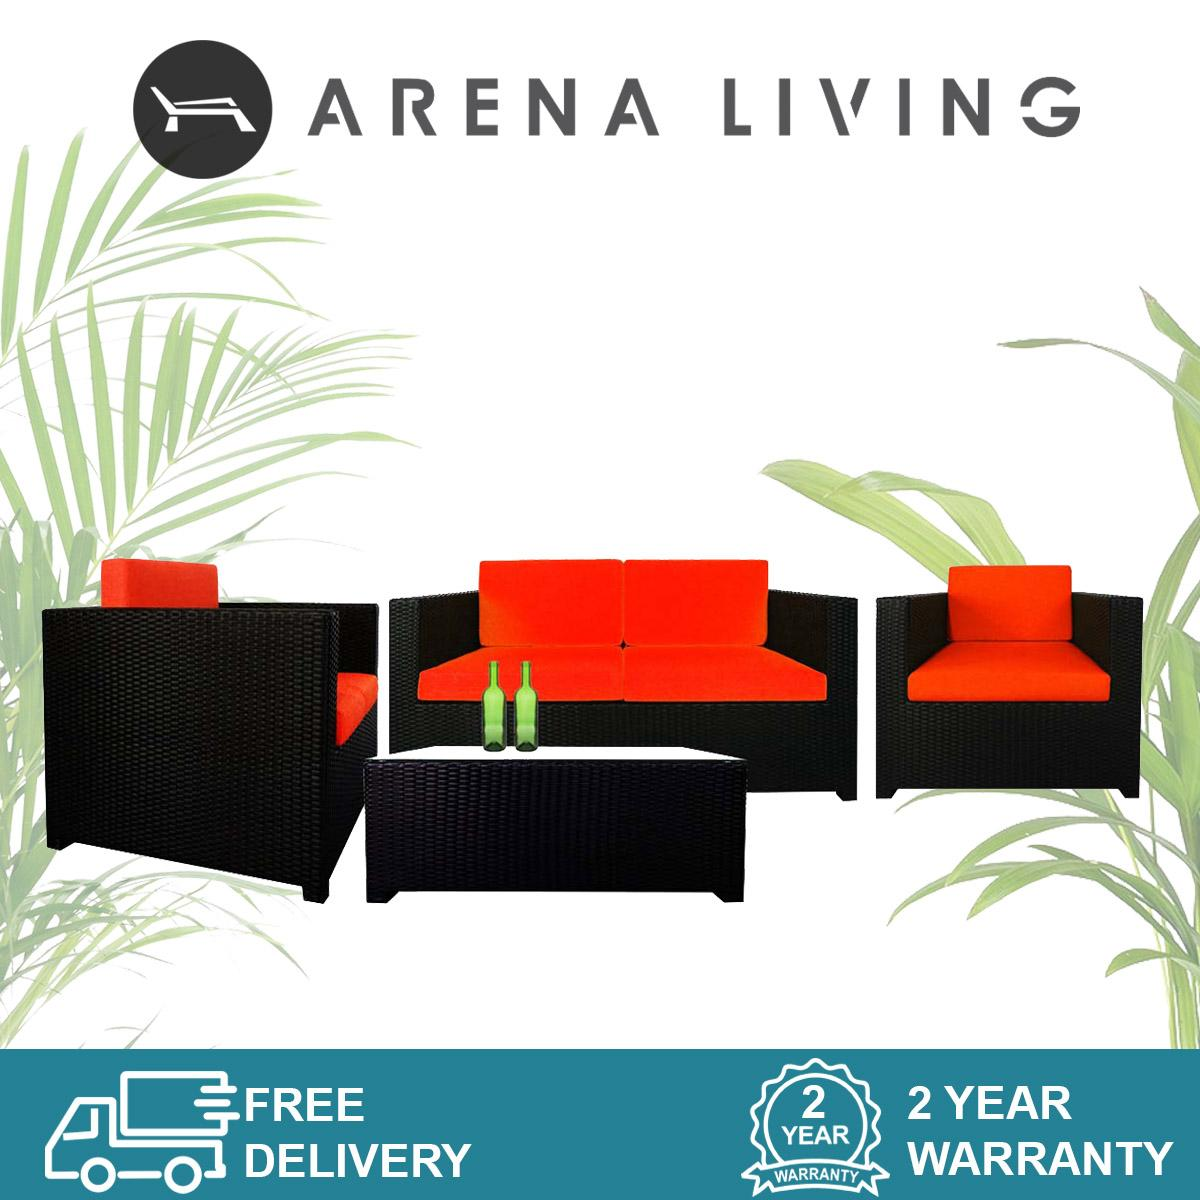 Fiesta Sofa Set II Orange Cushions, Outdoor Furniture by Arena Living